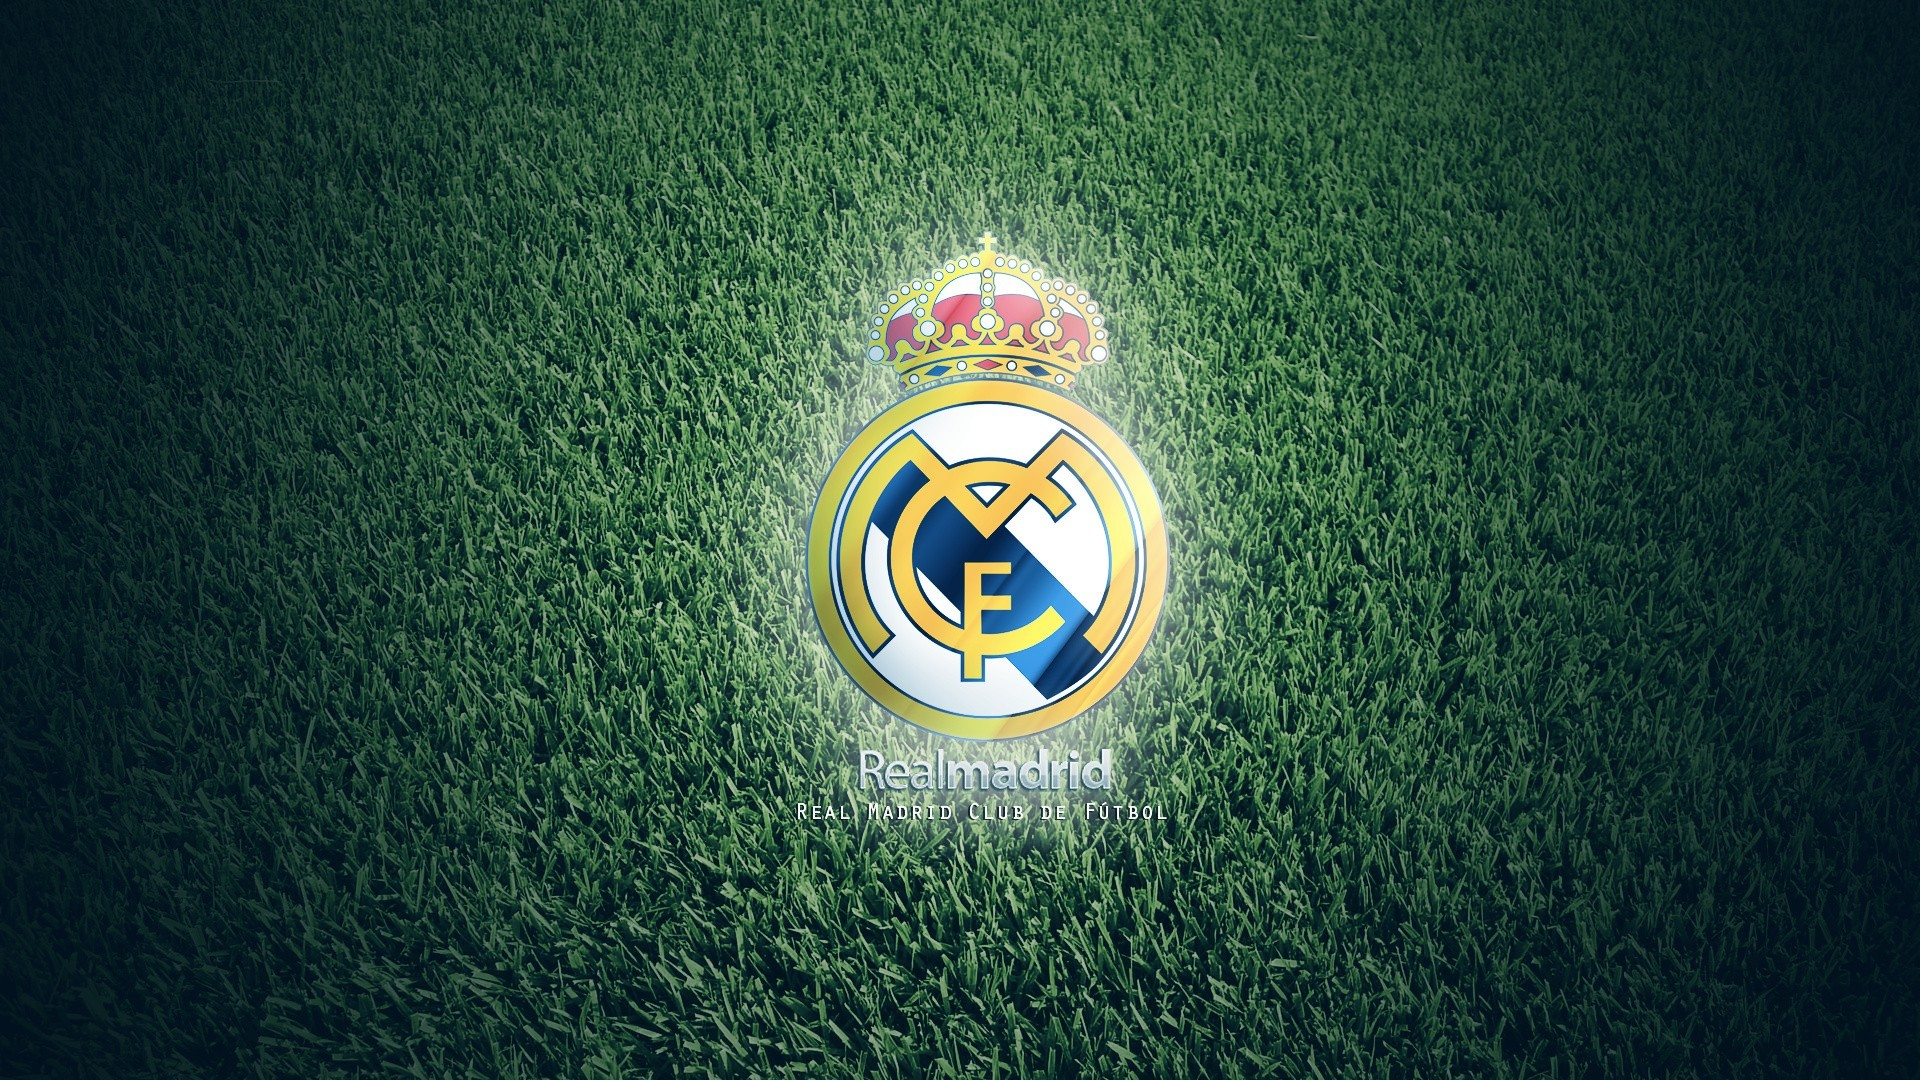 real madrid logo 3d cool background wallpaper hd download background images  mac desktop wallpapers amazing high